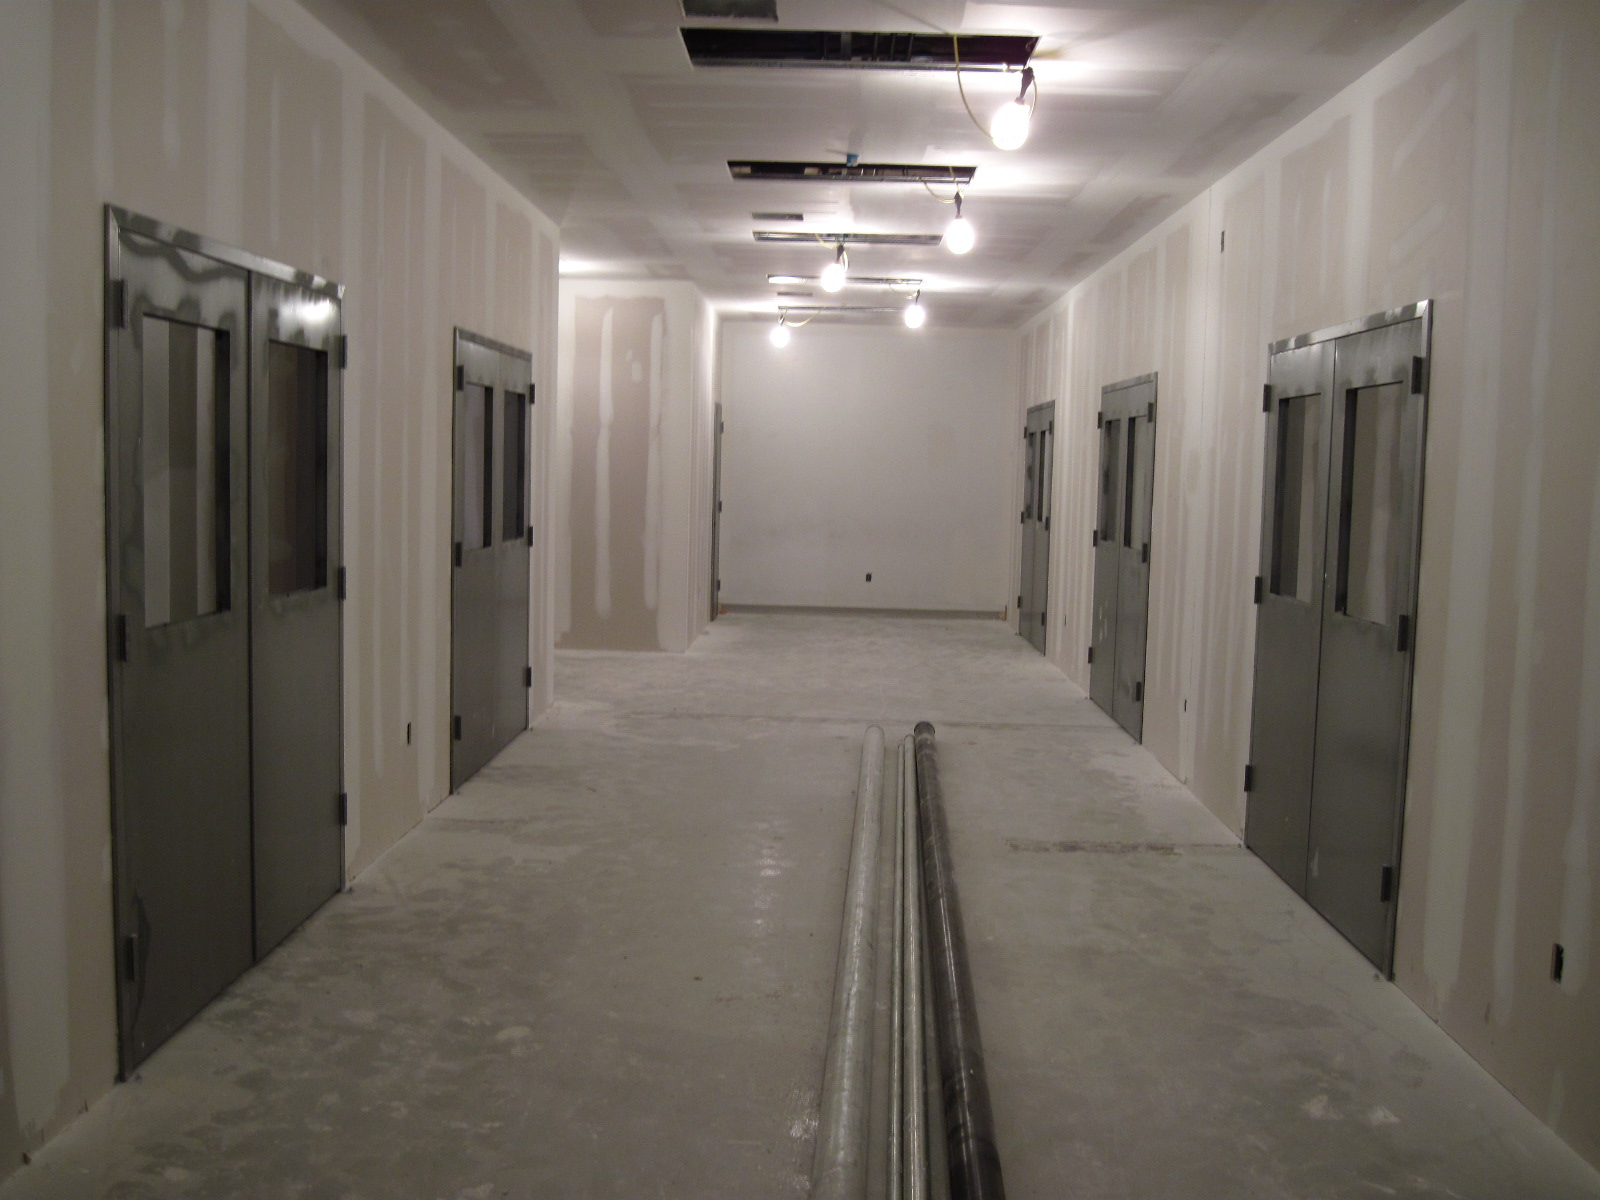 Commercial Drywall Construction